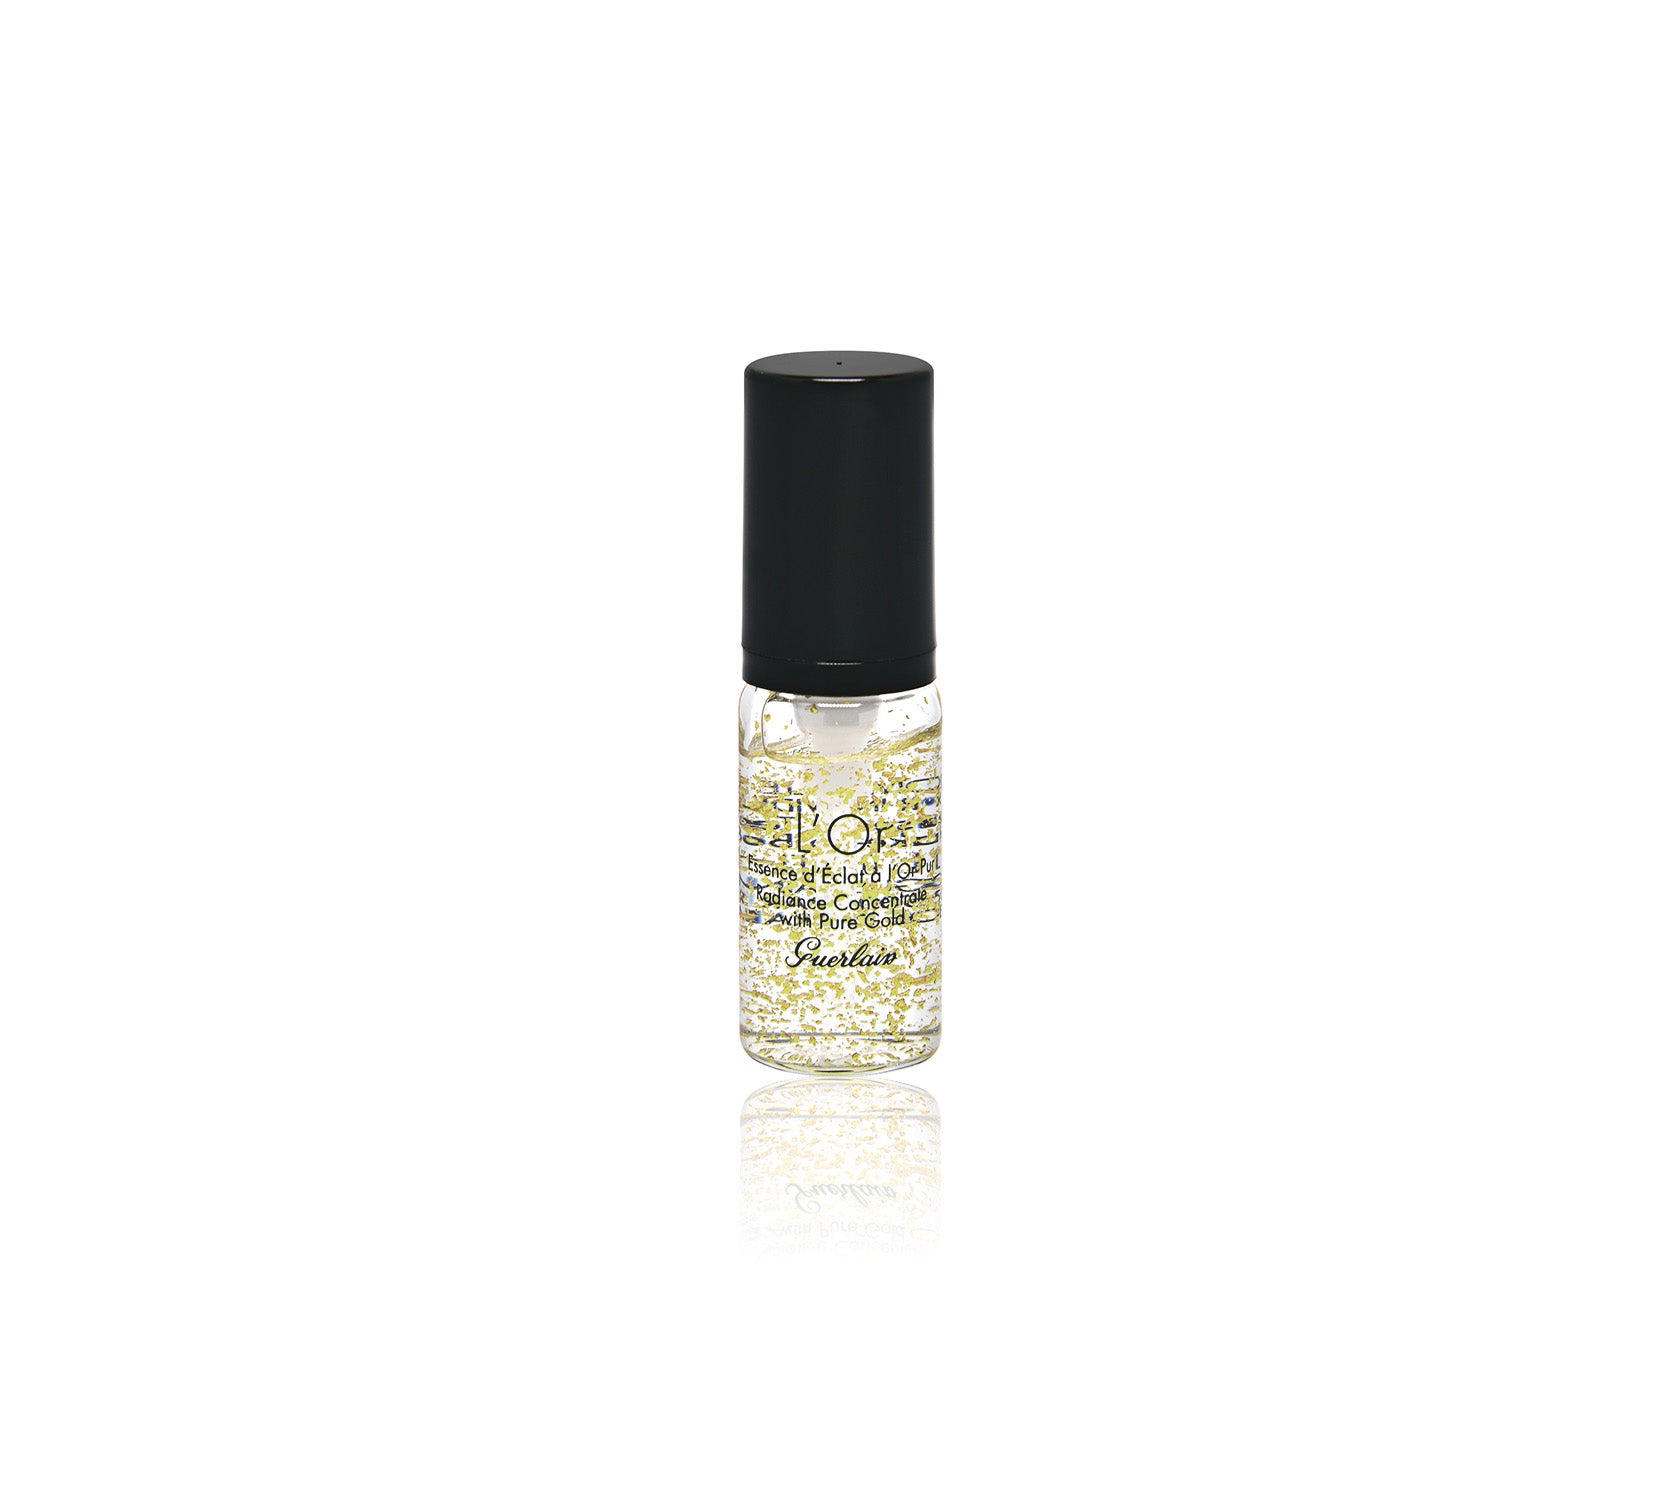 [Mini] L'or Radiance Concentrate With Pure Gold Make Up Base